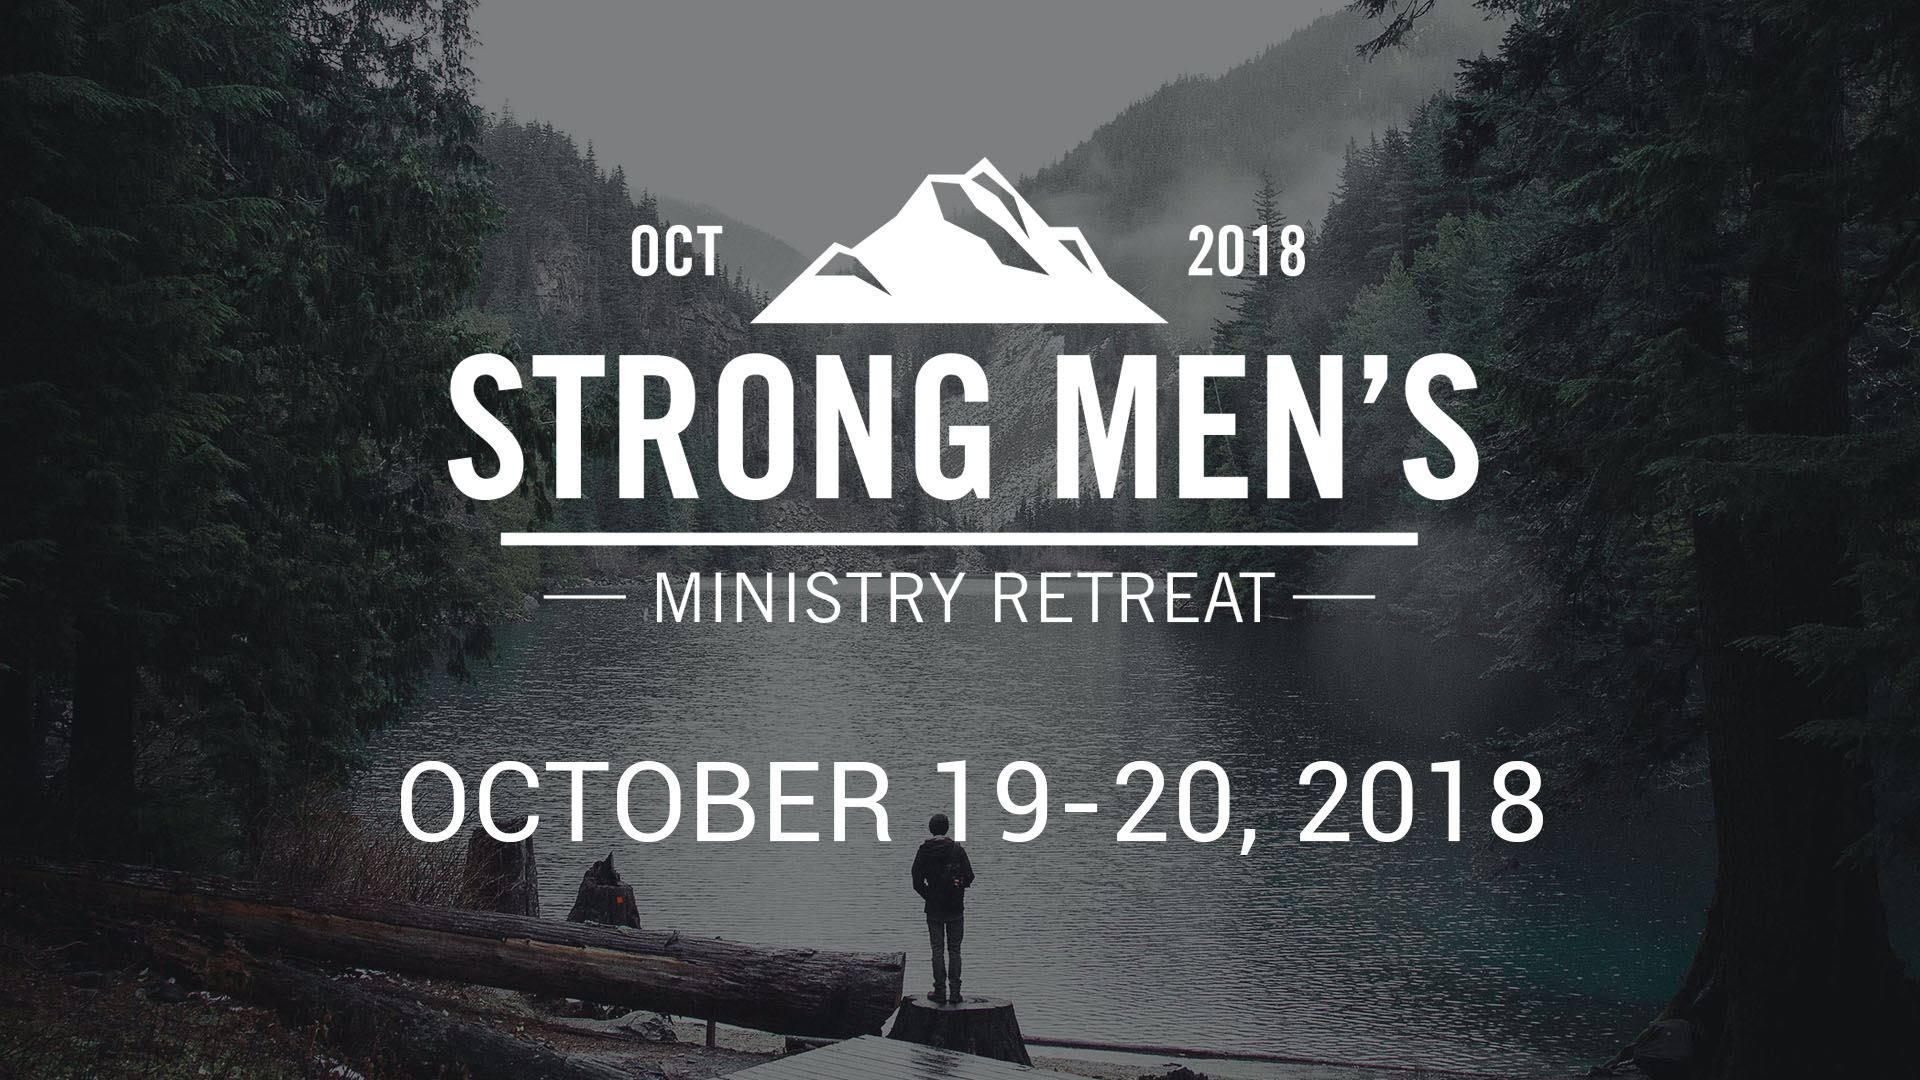 Strong men retreat 1920x1080 with date